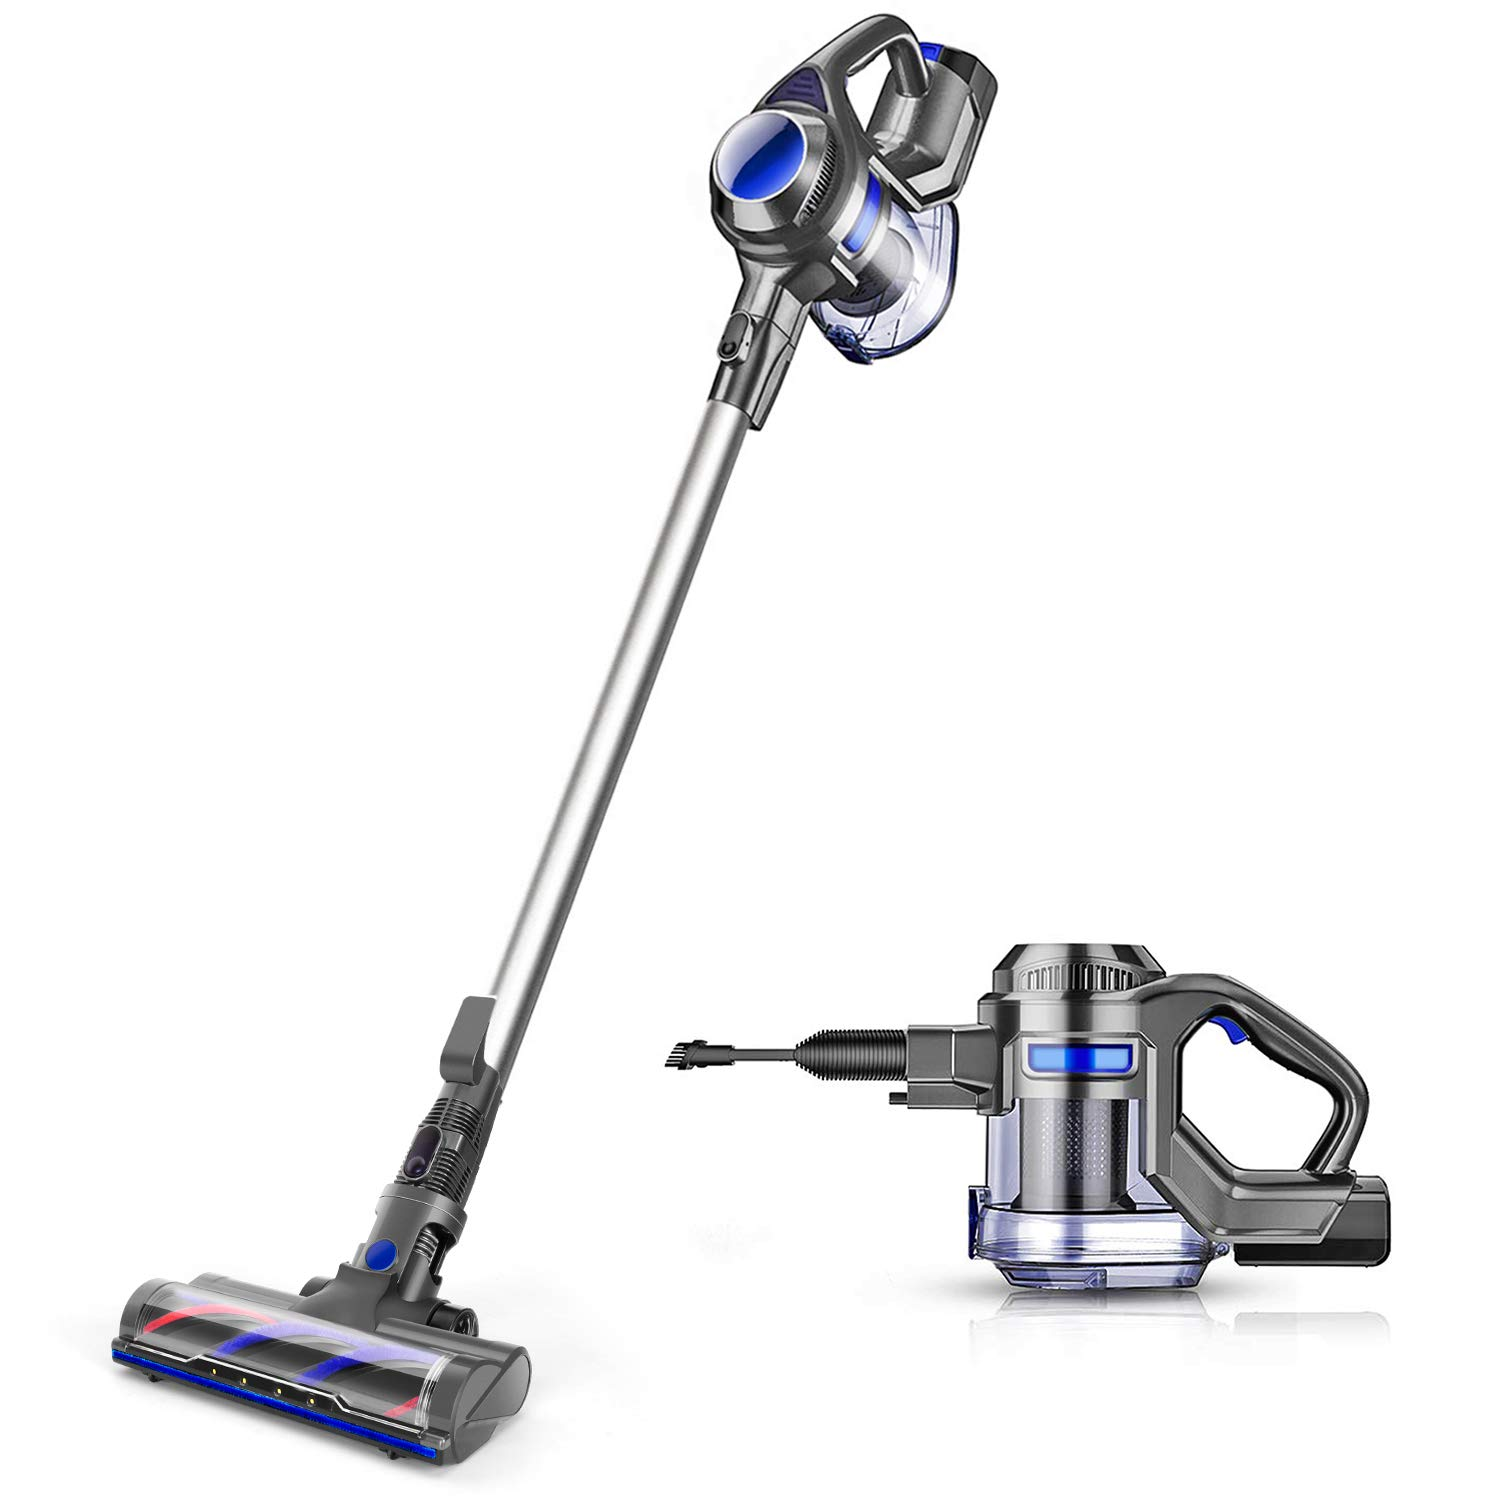 The Best stick vacuum cleaner - Our pick